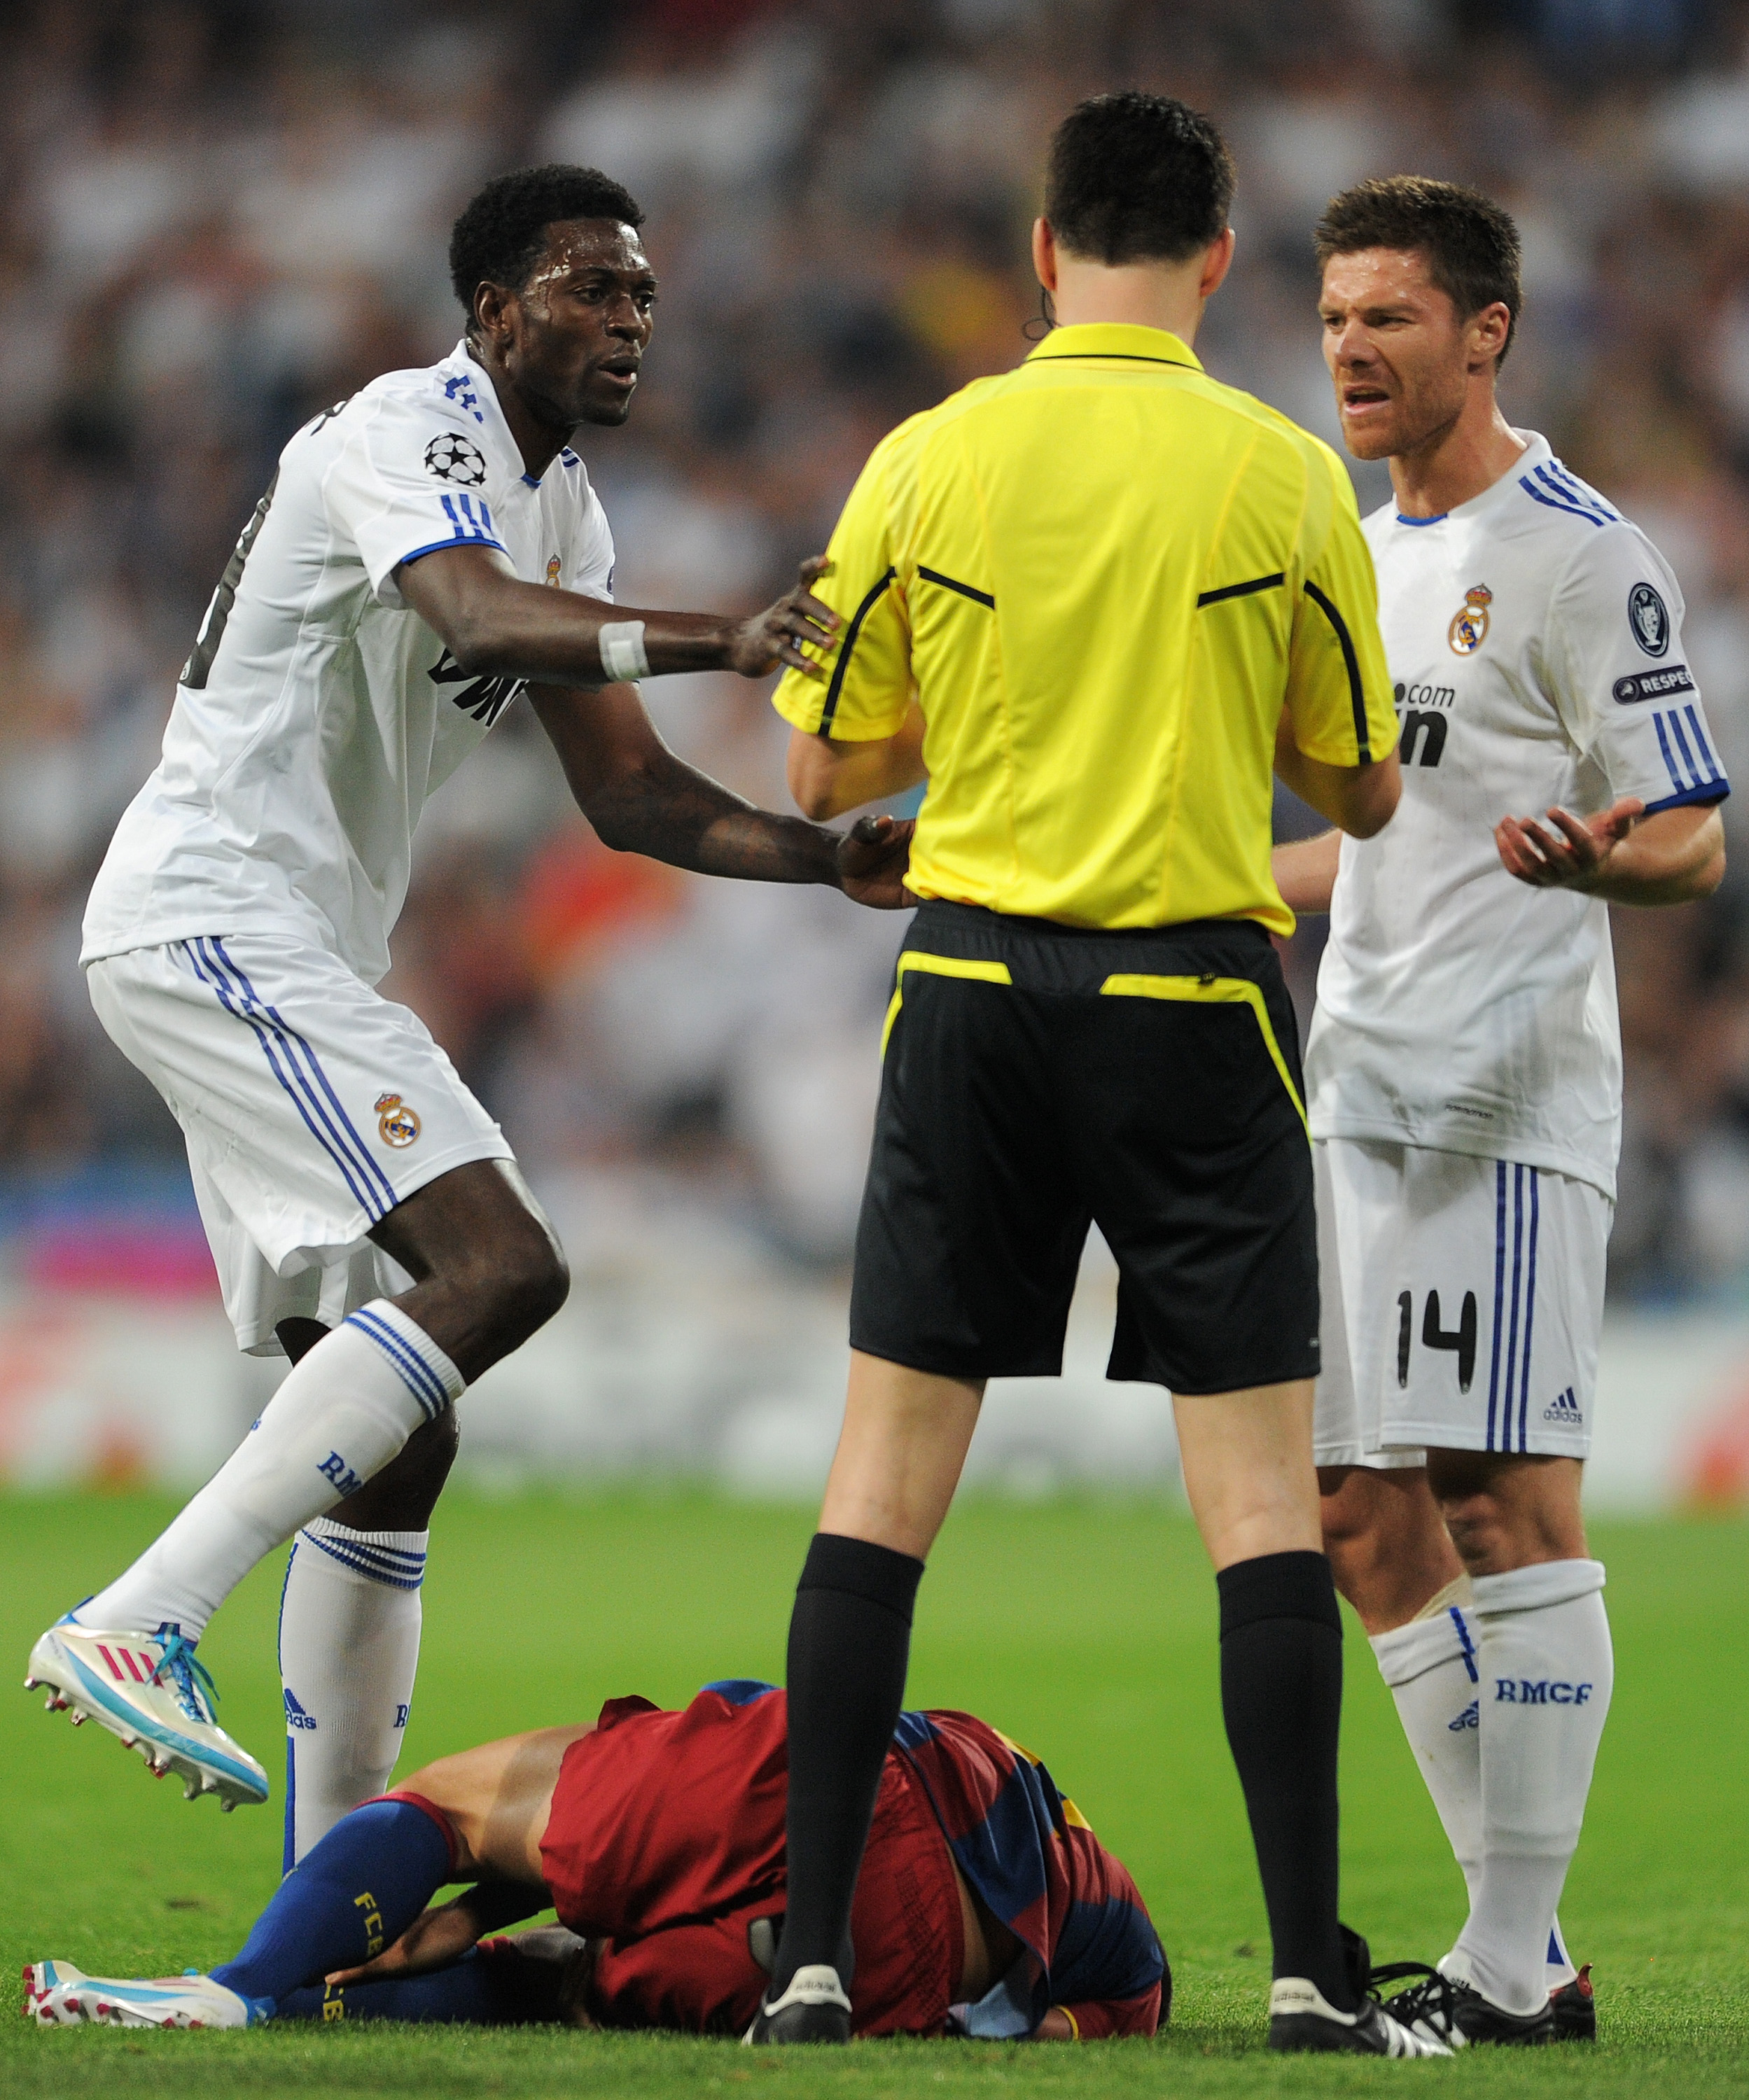 MADRID, SPAIN - APRIL 27:  Emmanuel Adebayor (L) and Xabi Alonso (R) of Real Madrid argue with referee Wolfgang Stark (C) as Daniel Alves of Barcelona lays on the pitch after being fouled by Pepe during the UEFA Champions League Semi Final first leg match